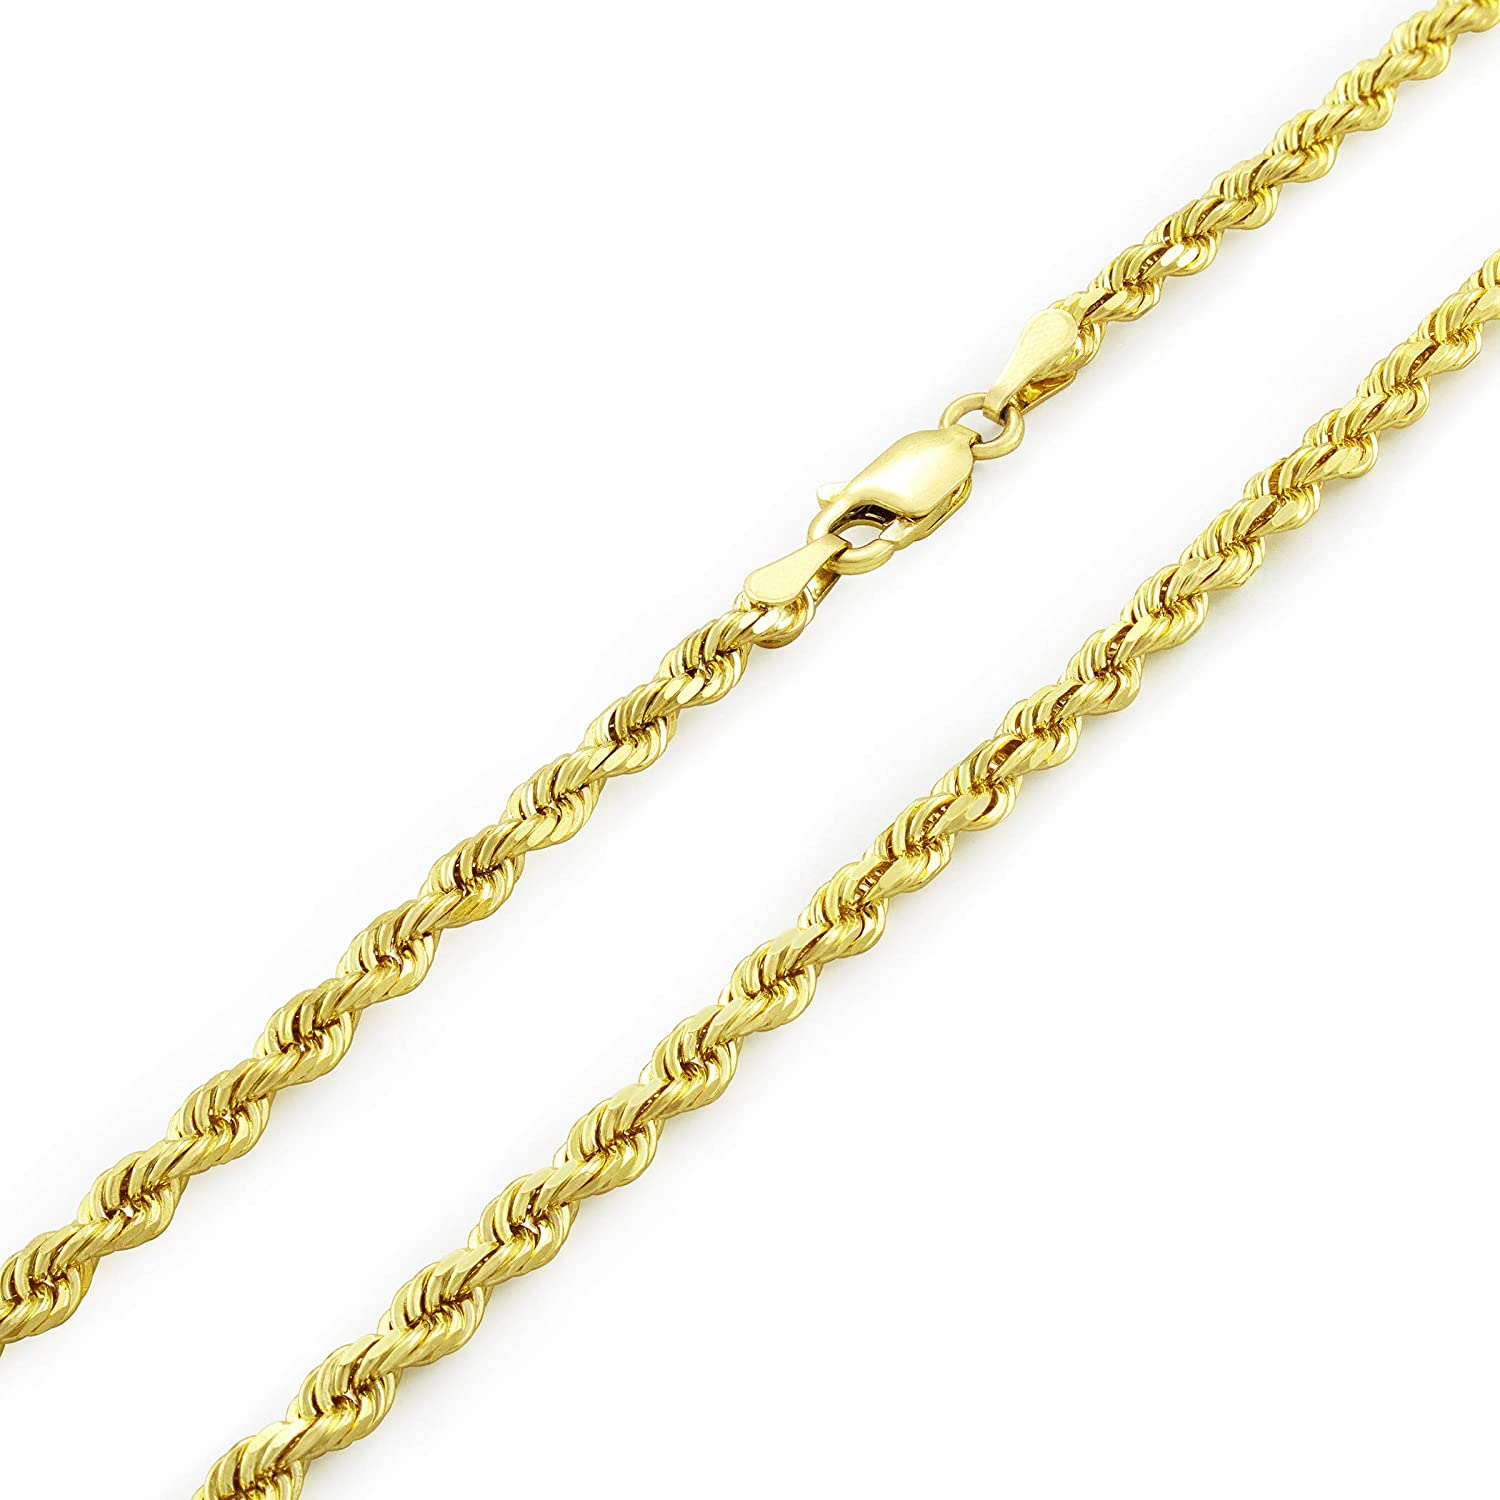 14K Solid Diamond Cut Yellow Gold 1.35mm Italy Rolo Round Link  Chain